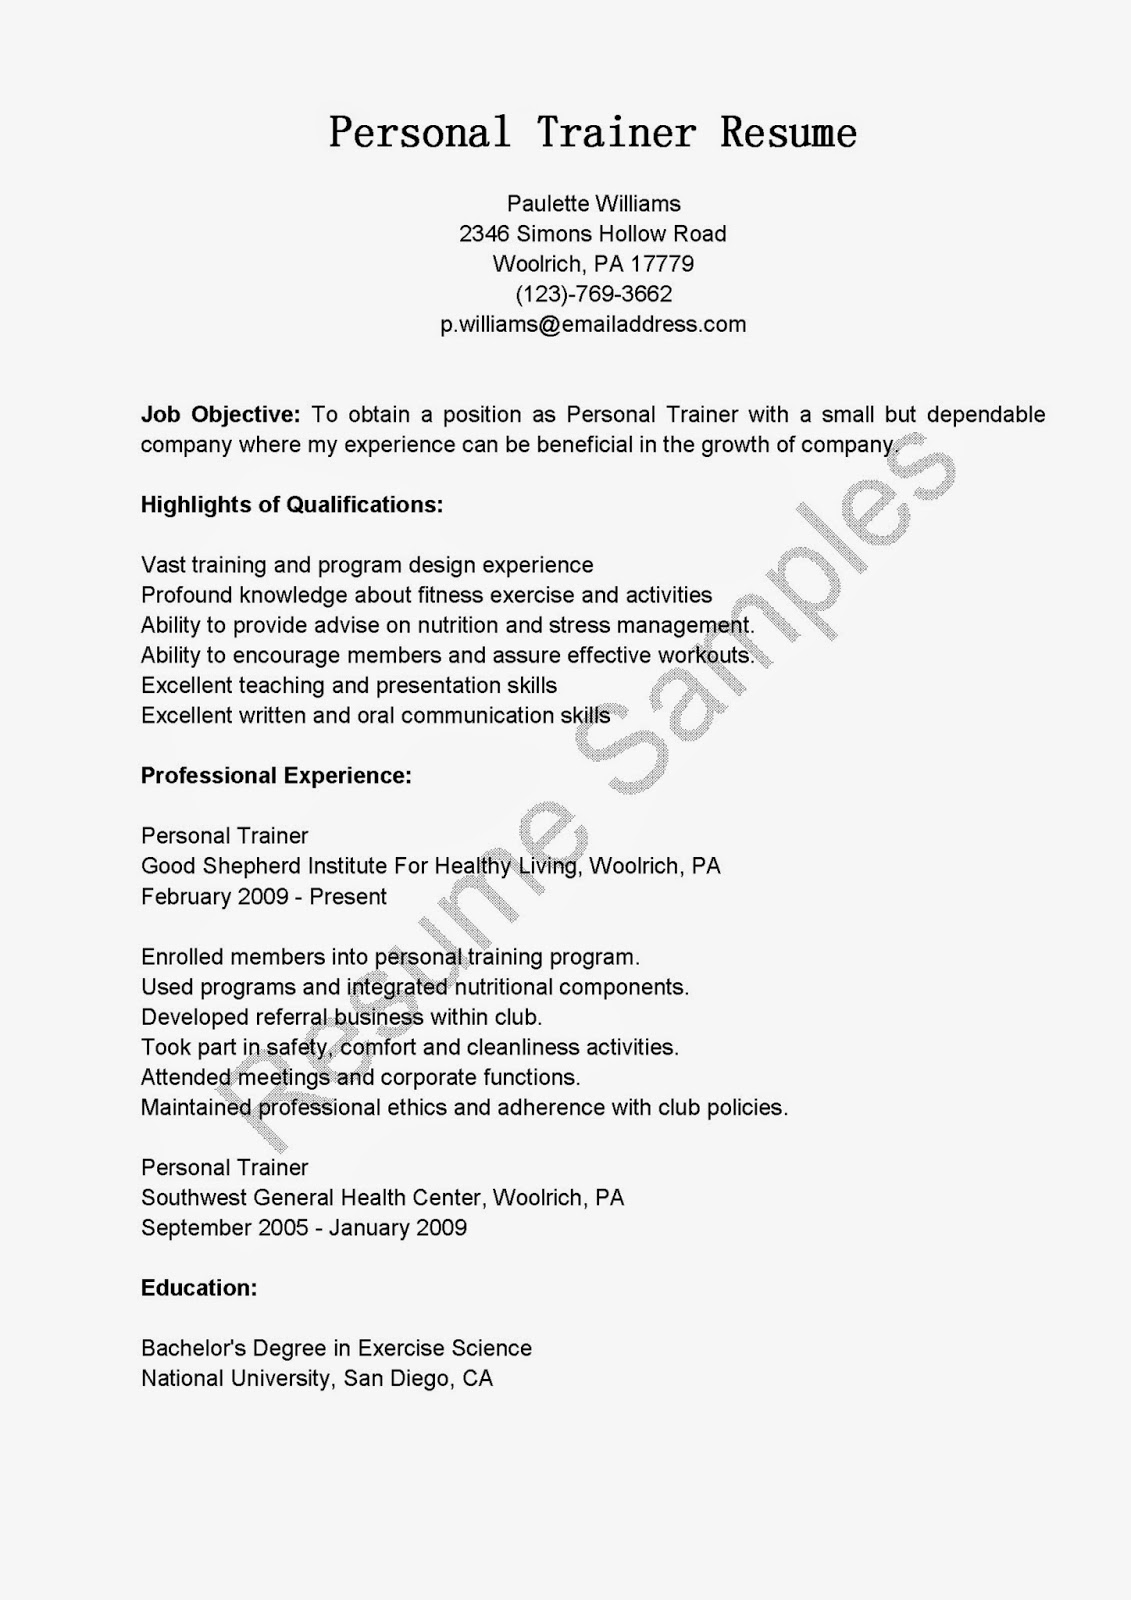 Resume For Personal Trainer